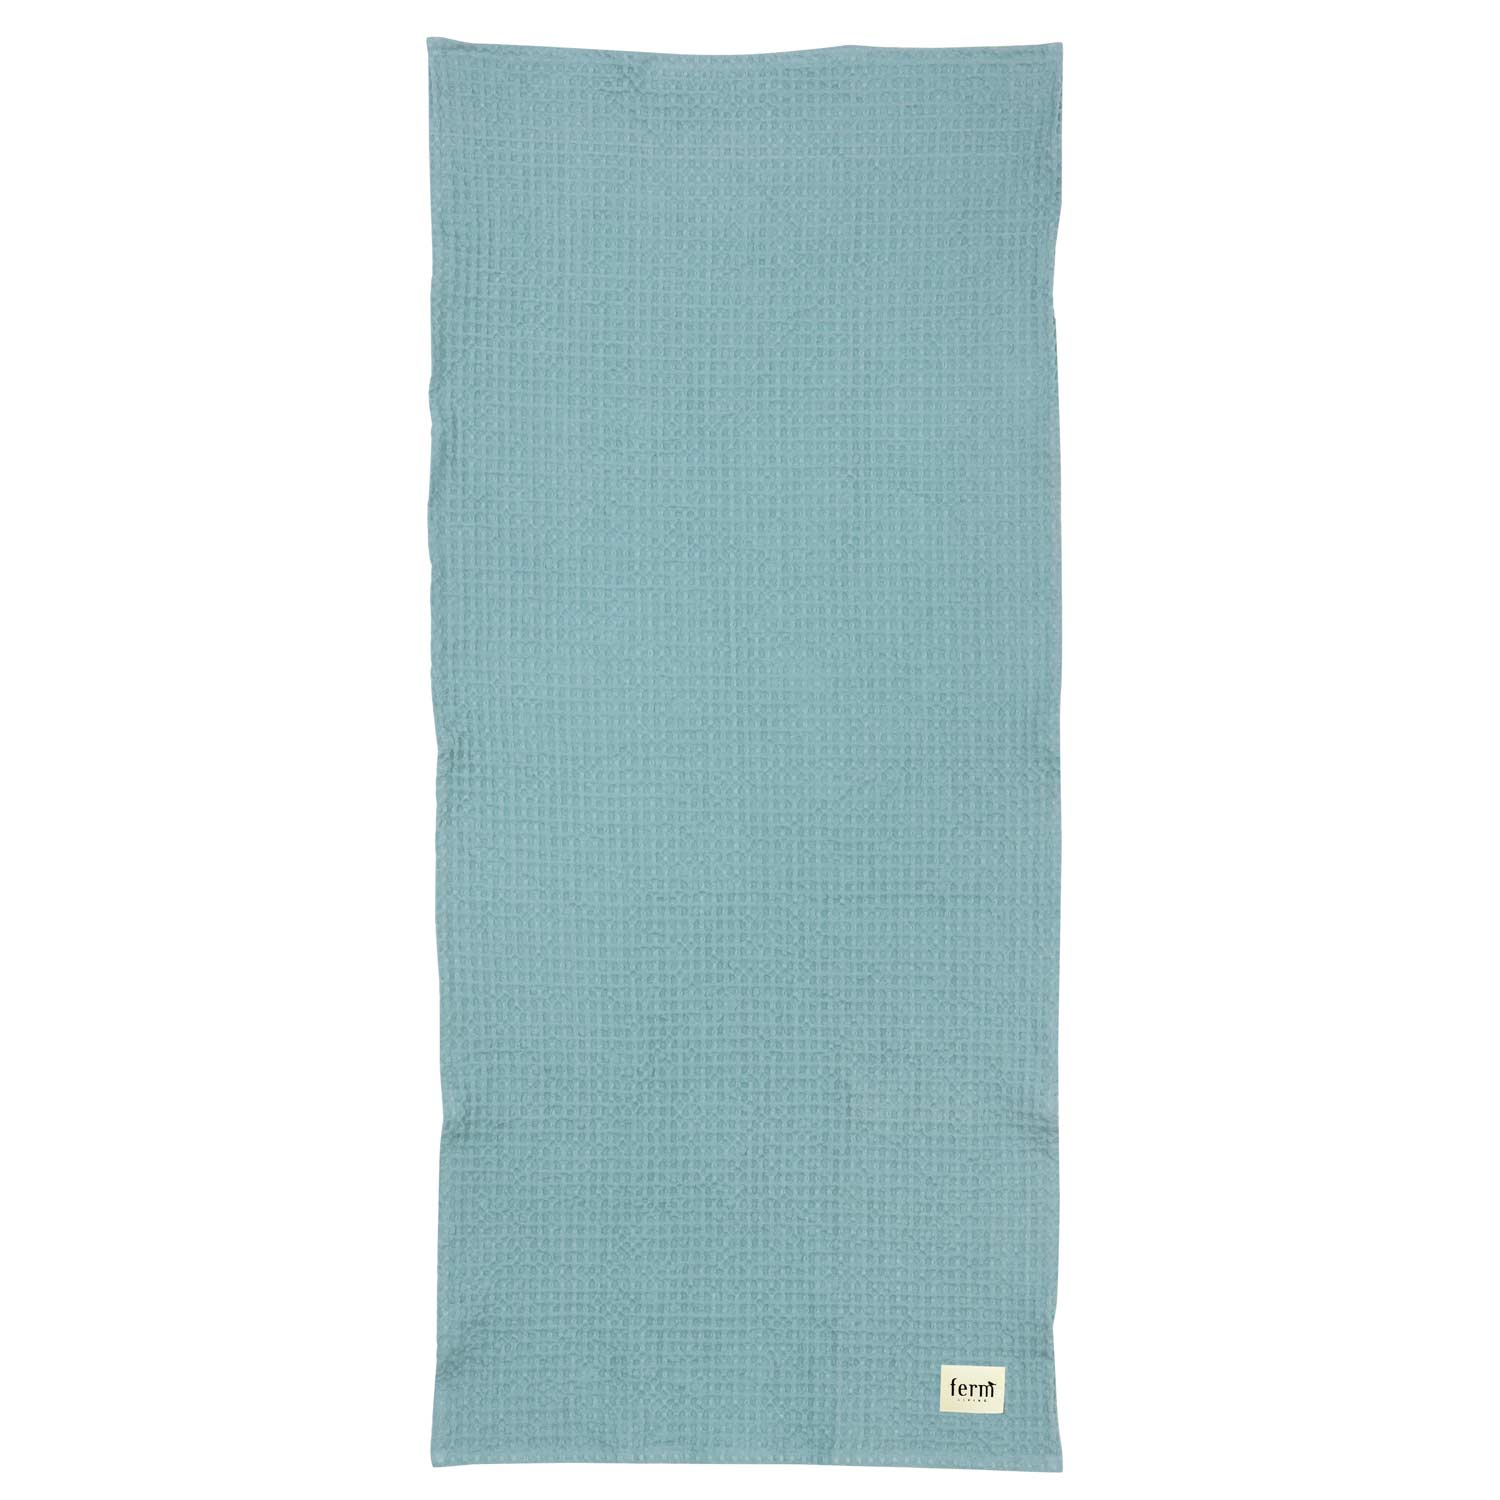 Wonderful Ferm Living Organic Cotton Bath Towel In Dusty Blue